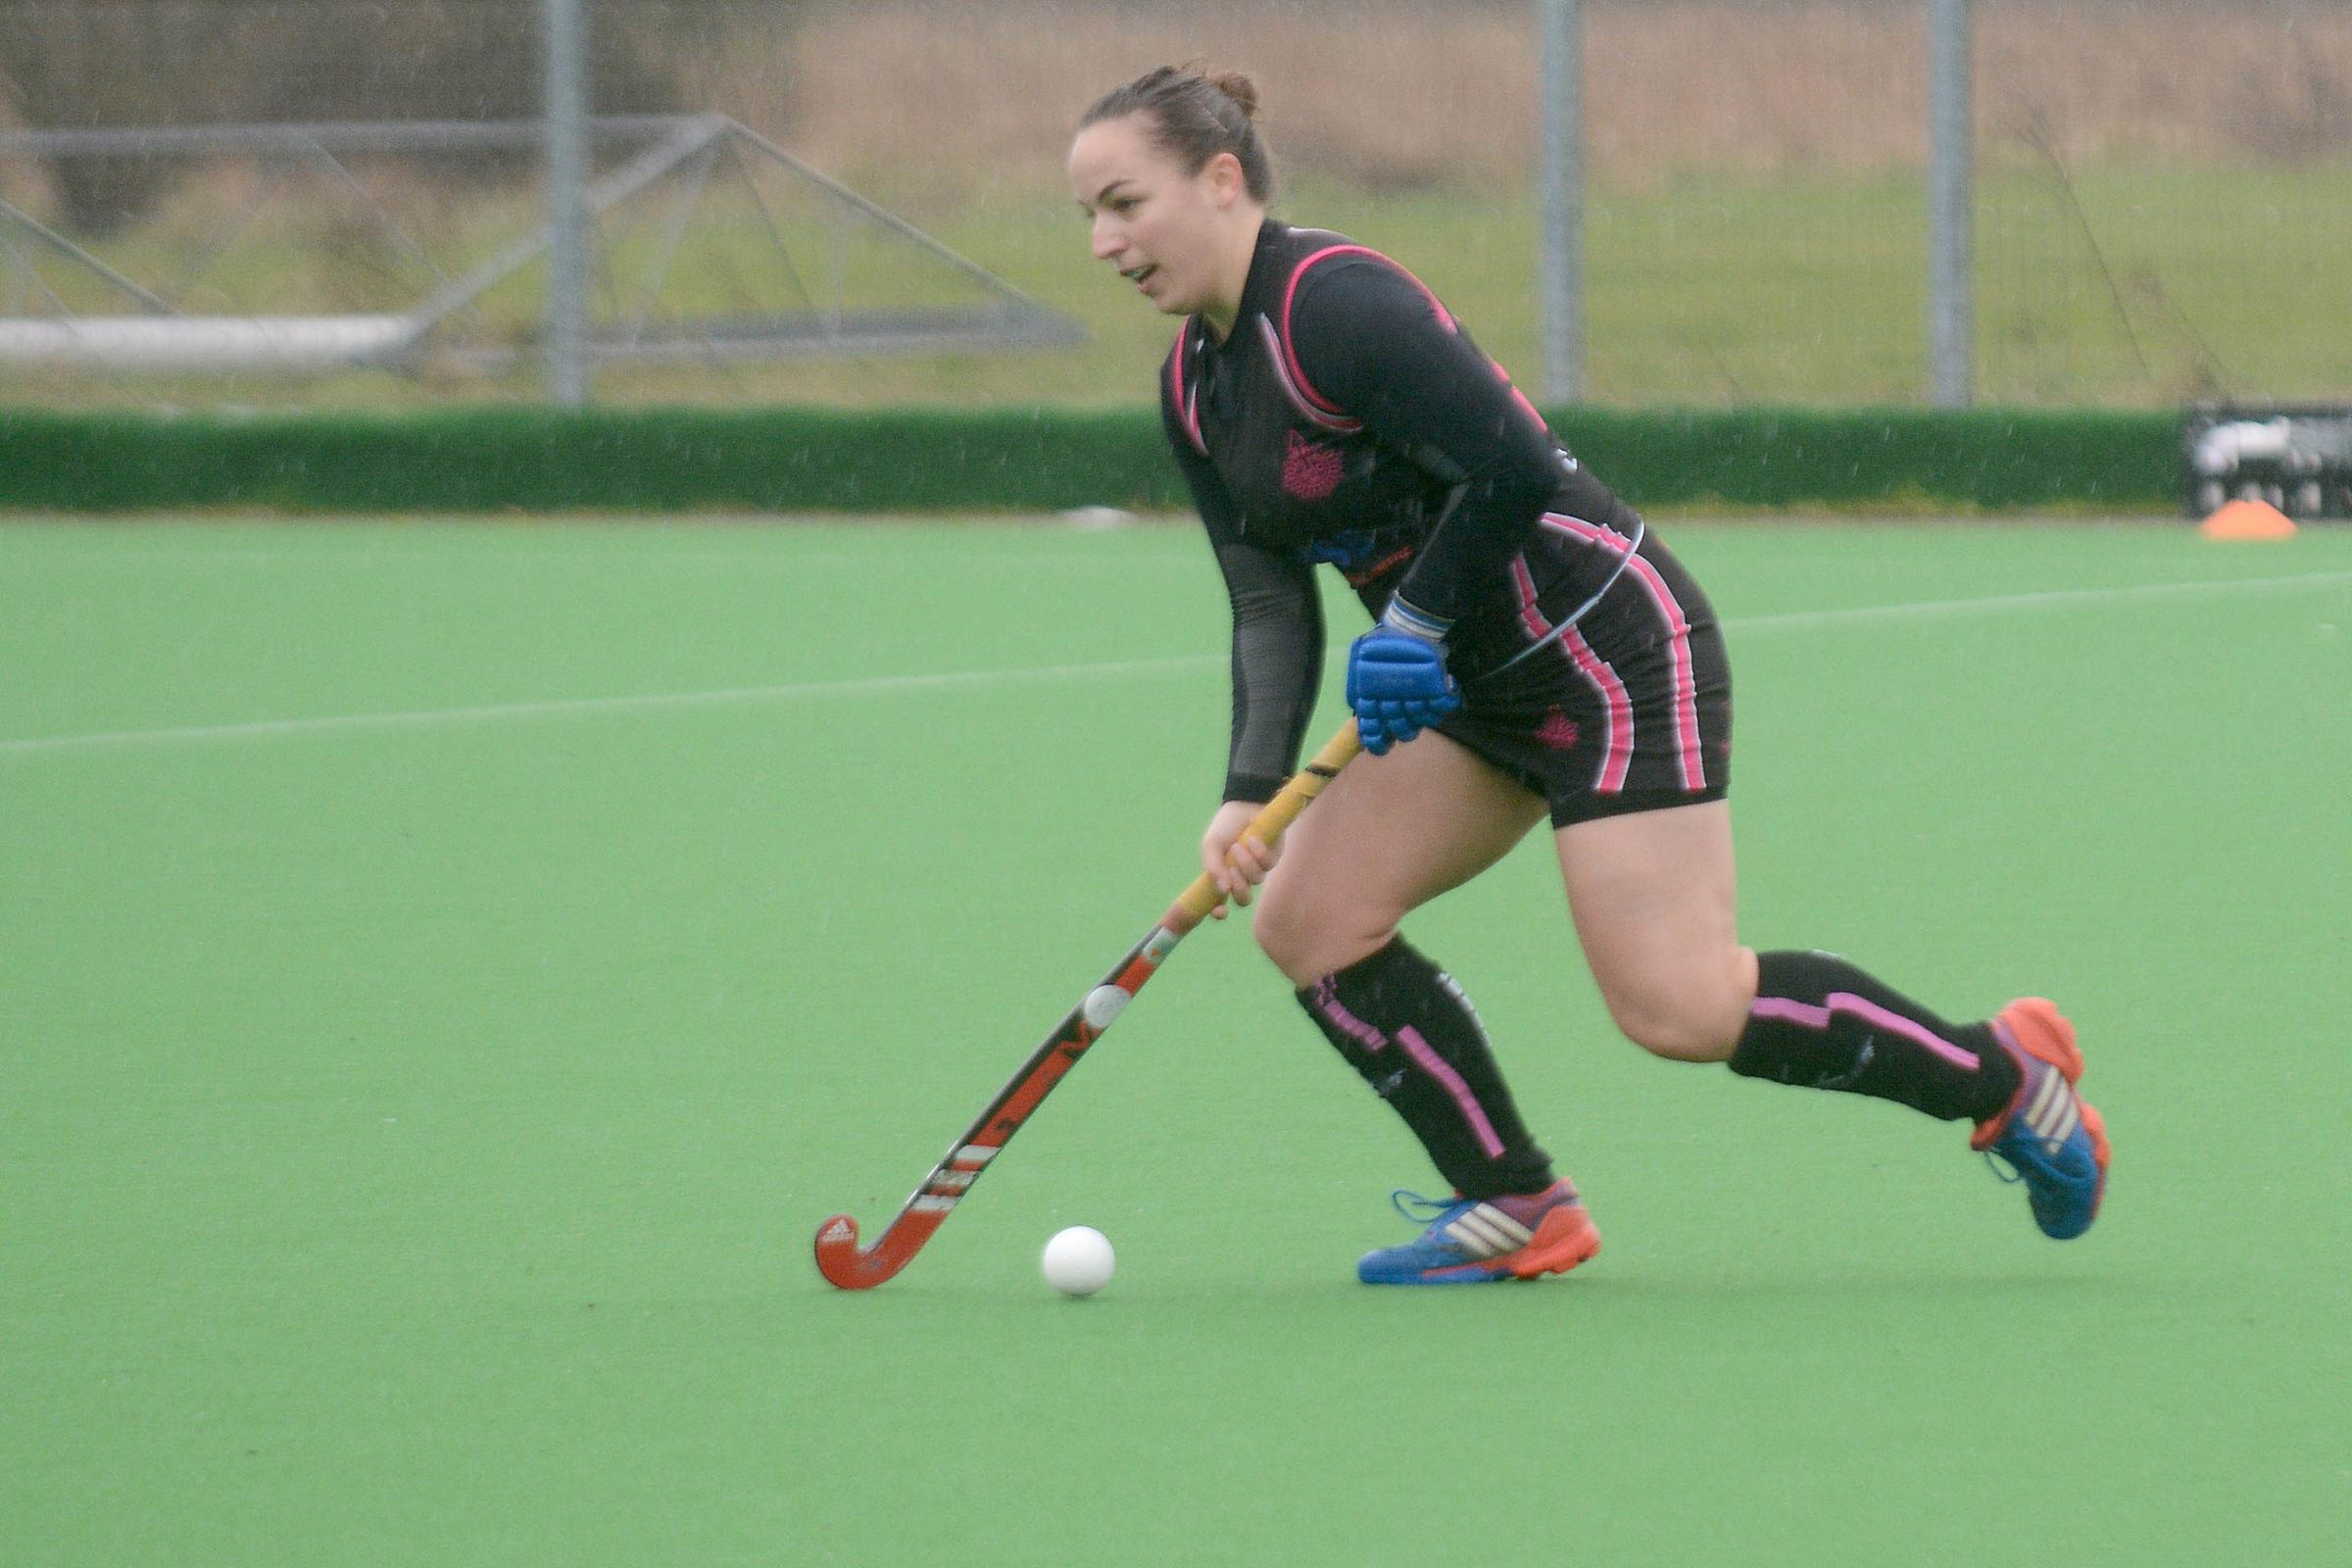 Dilly Newton scored for Slough Hockey Club ladies in the 3-2 defeat against Buckingham on Saturday.